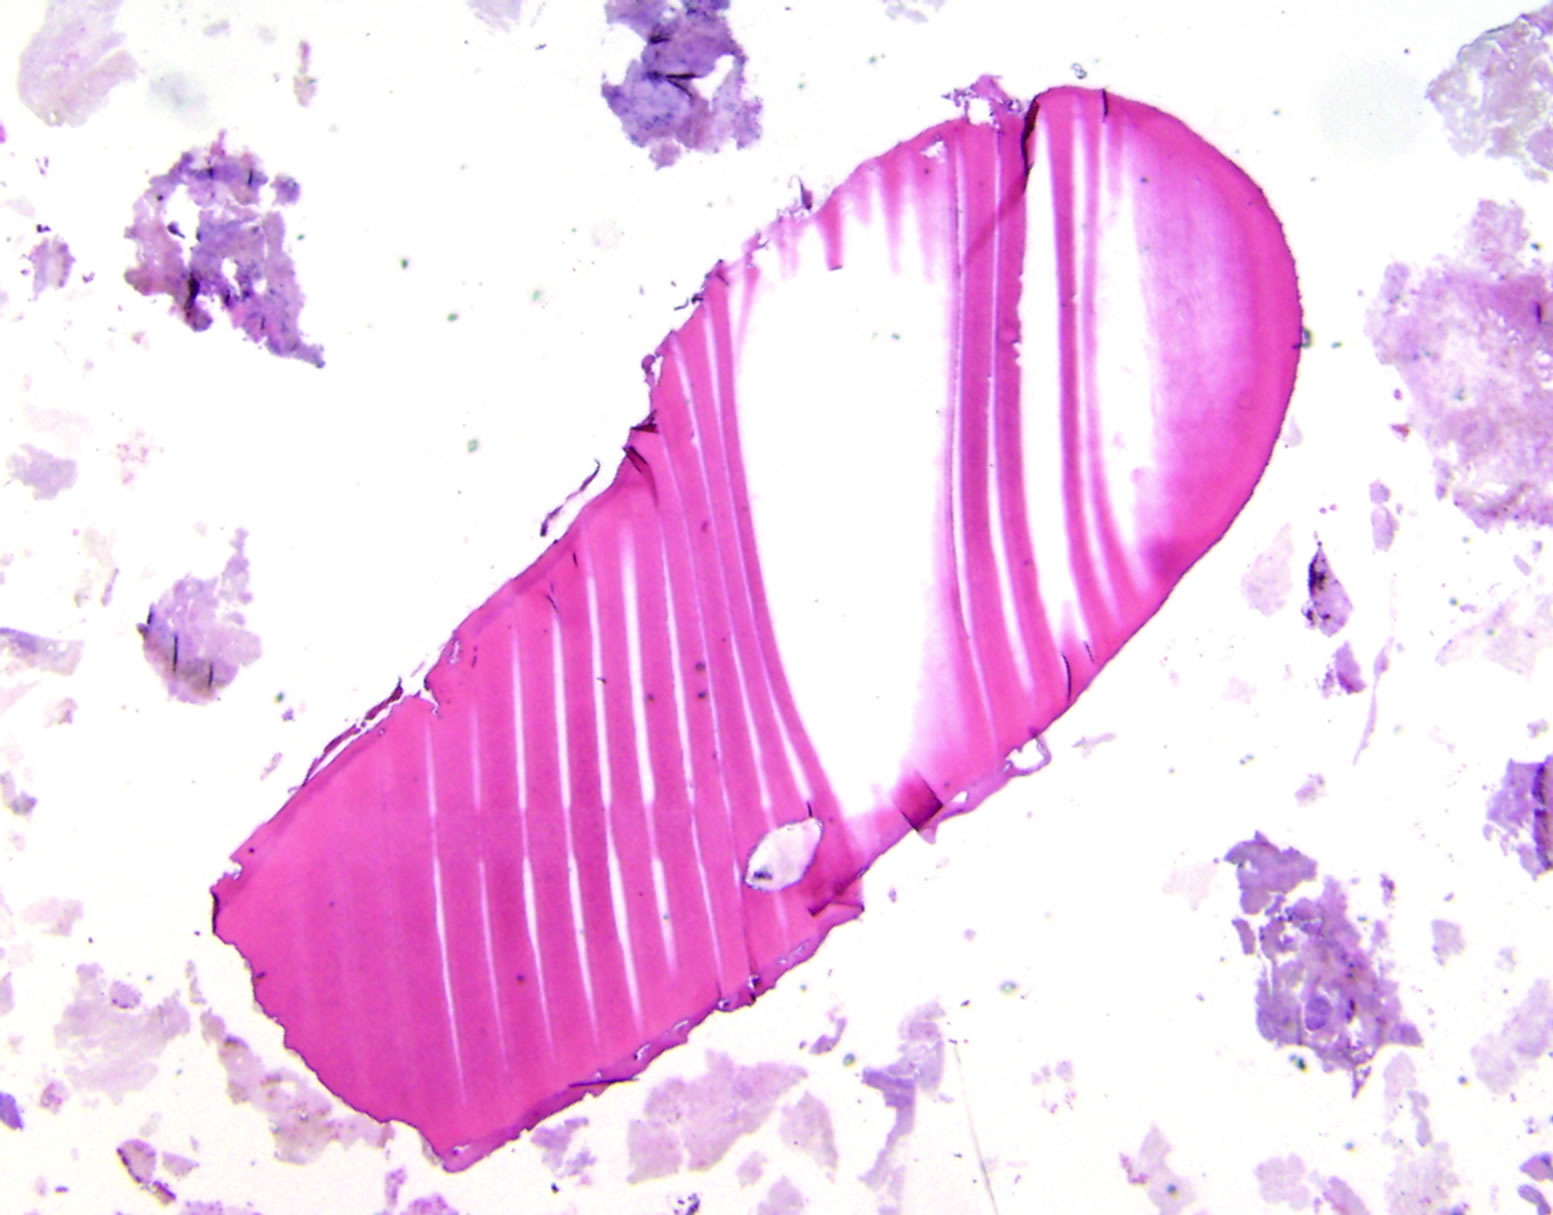 Compound Odontoma Histology Histopathology Low Power